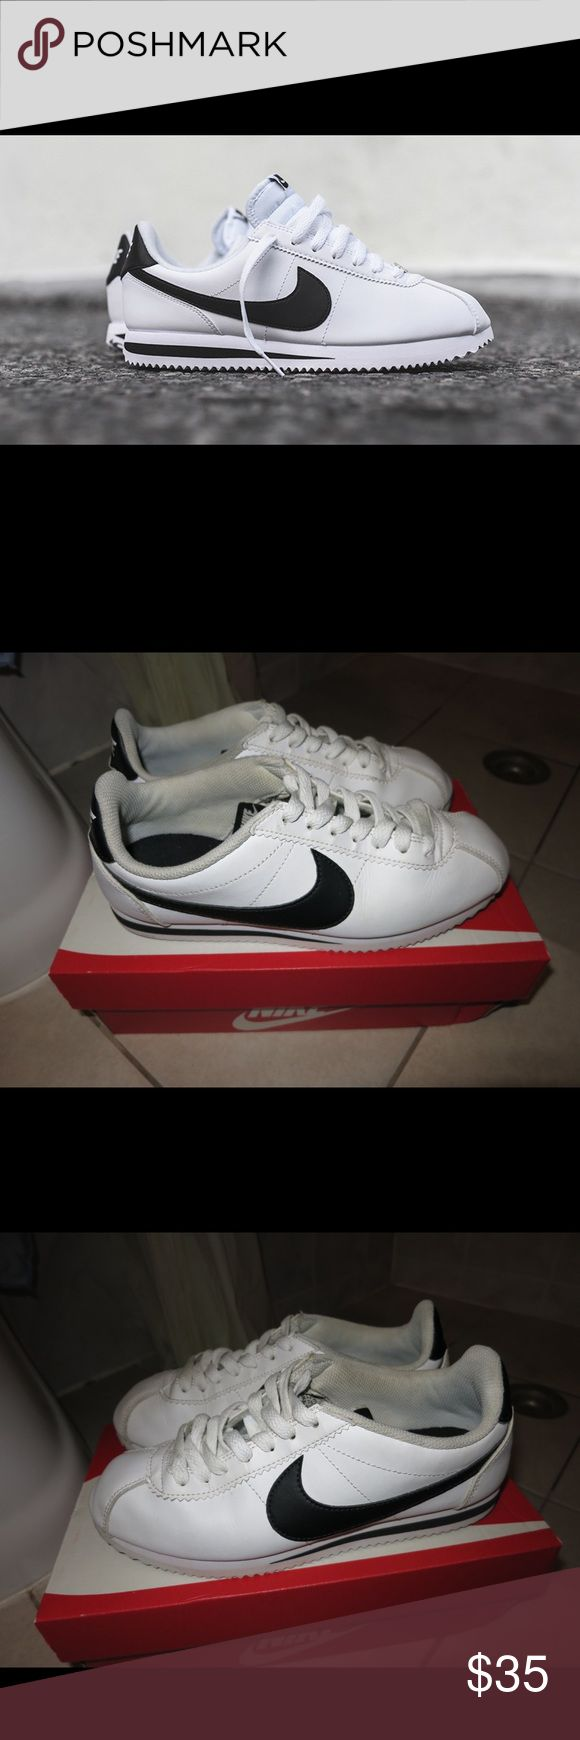 Nike Women Classic Black/White Cortez Worn, but dull in great condition.  These